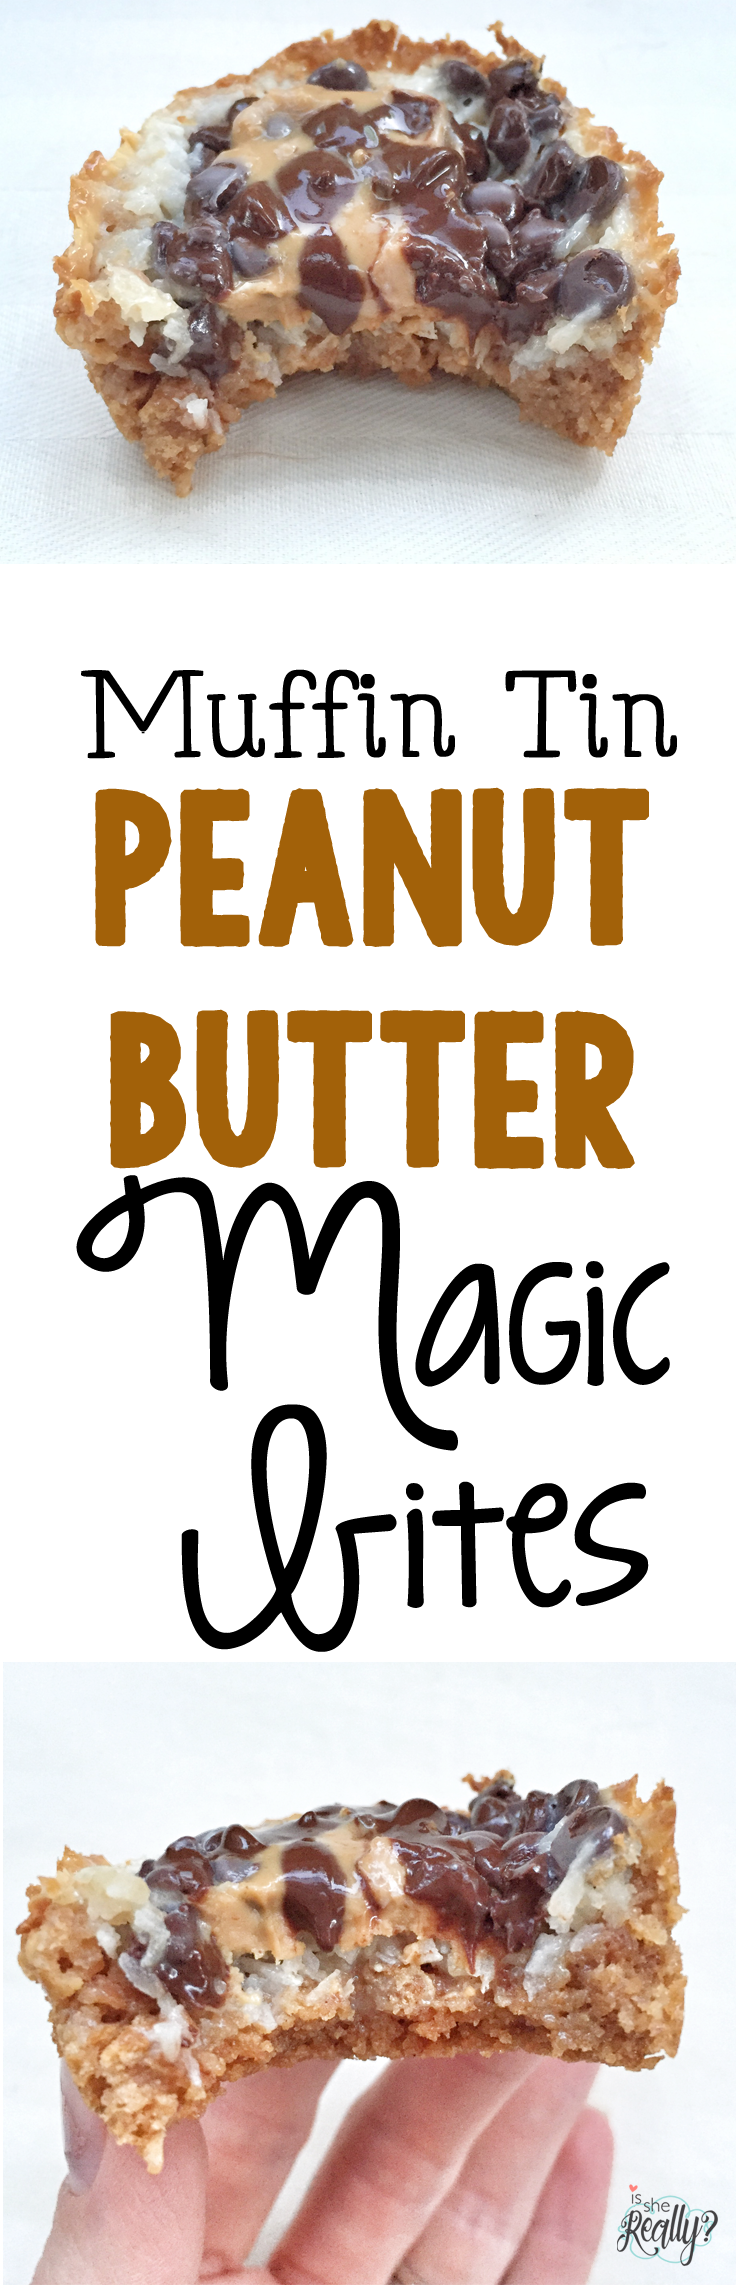 Peanut butter magic bites @ginaekirk